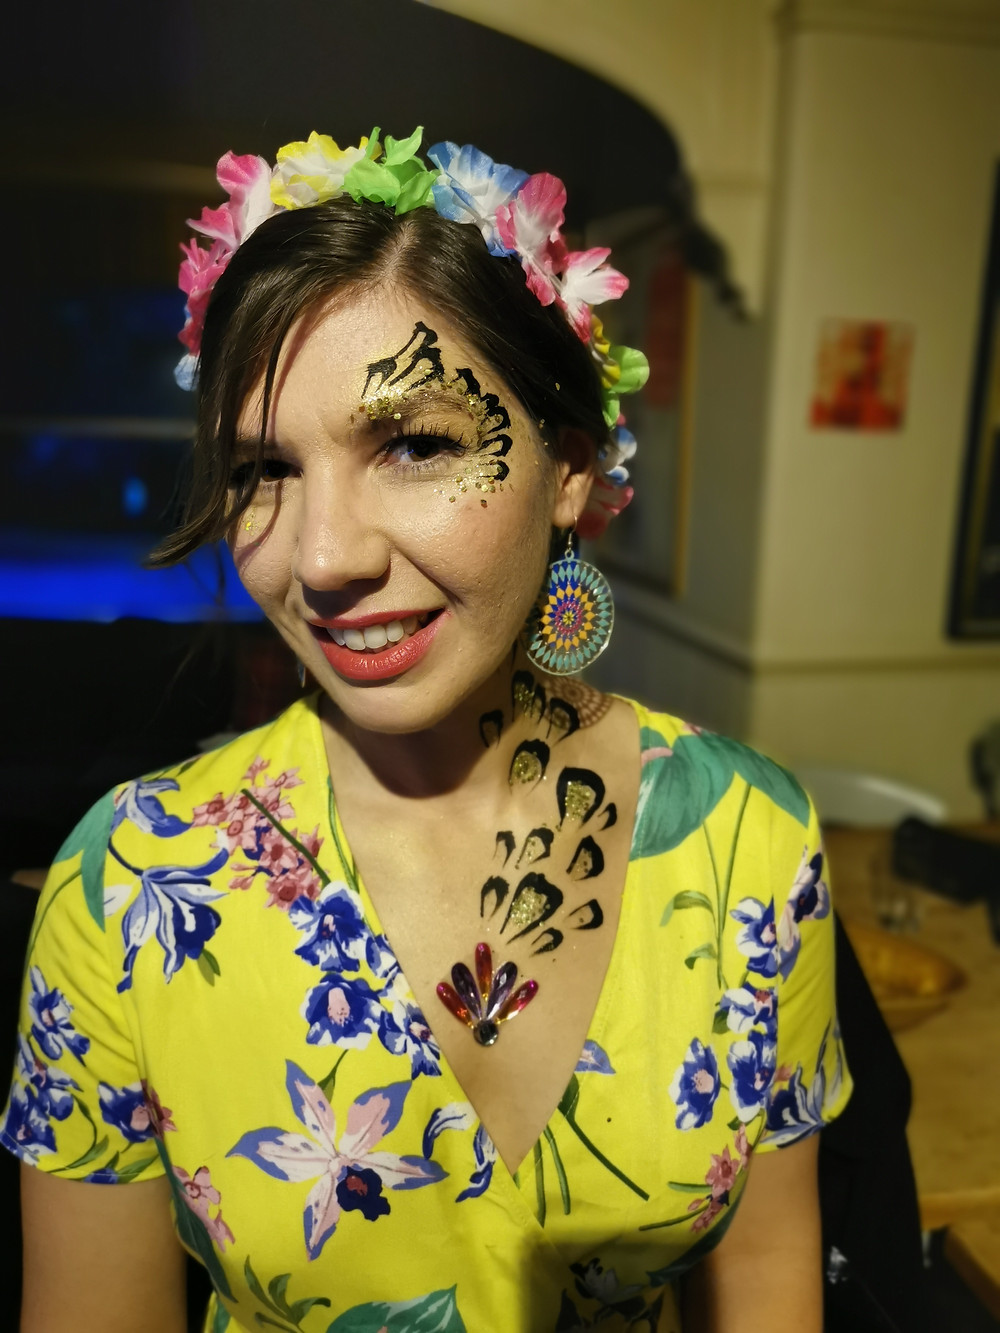 The Mobile Painting Parlour, Sheffield Face Painter and Body Artist